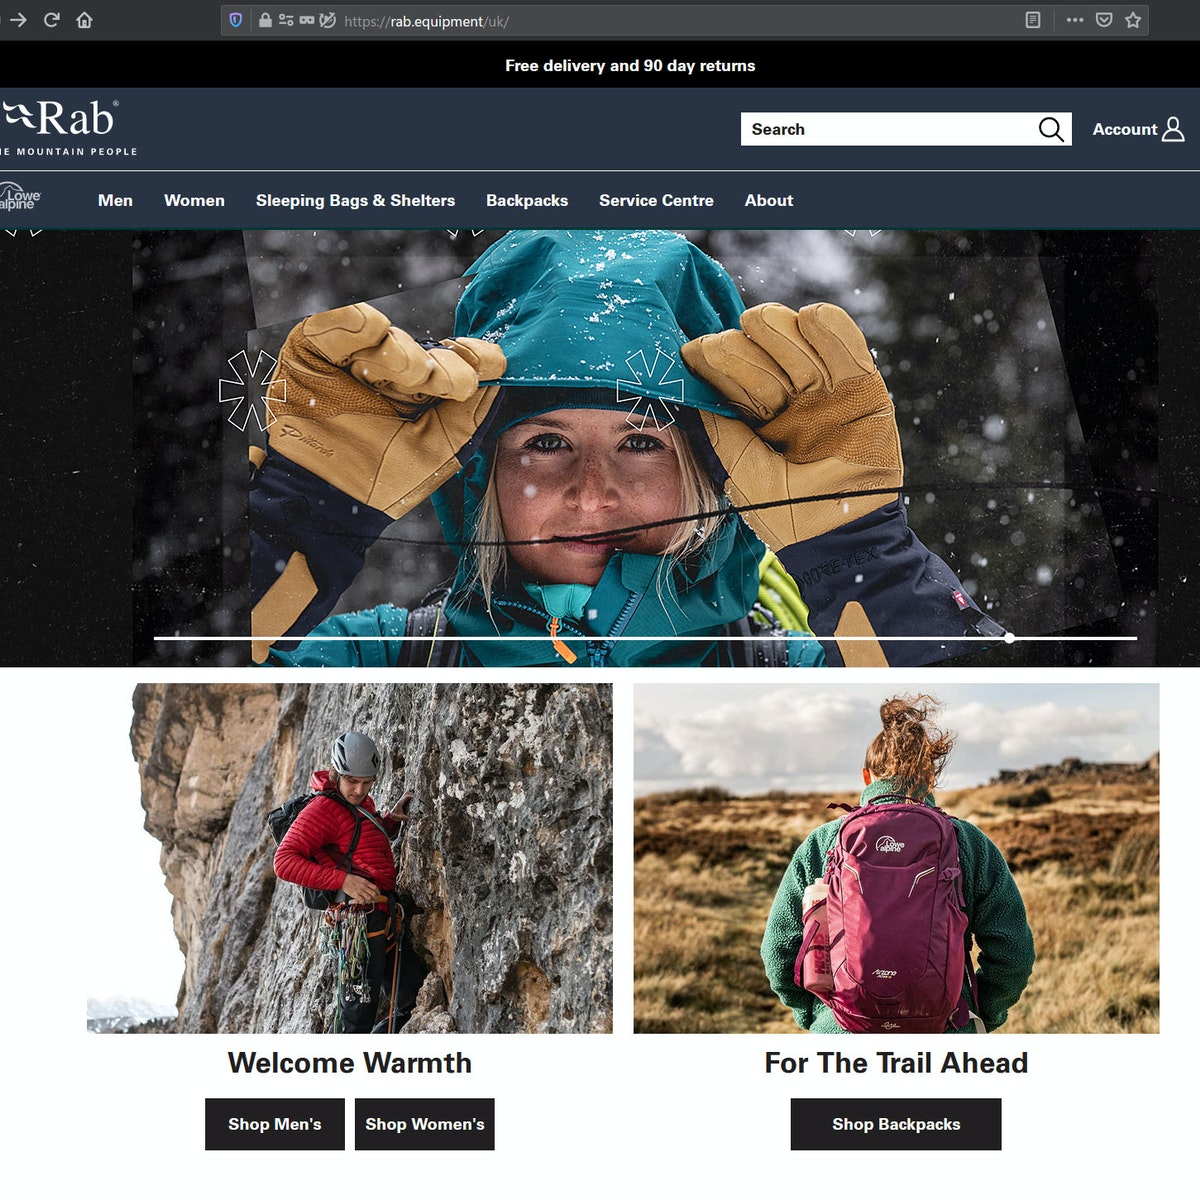 Visual of the rab website showing the AW20 season launch video